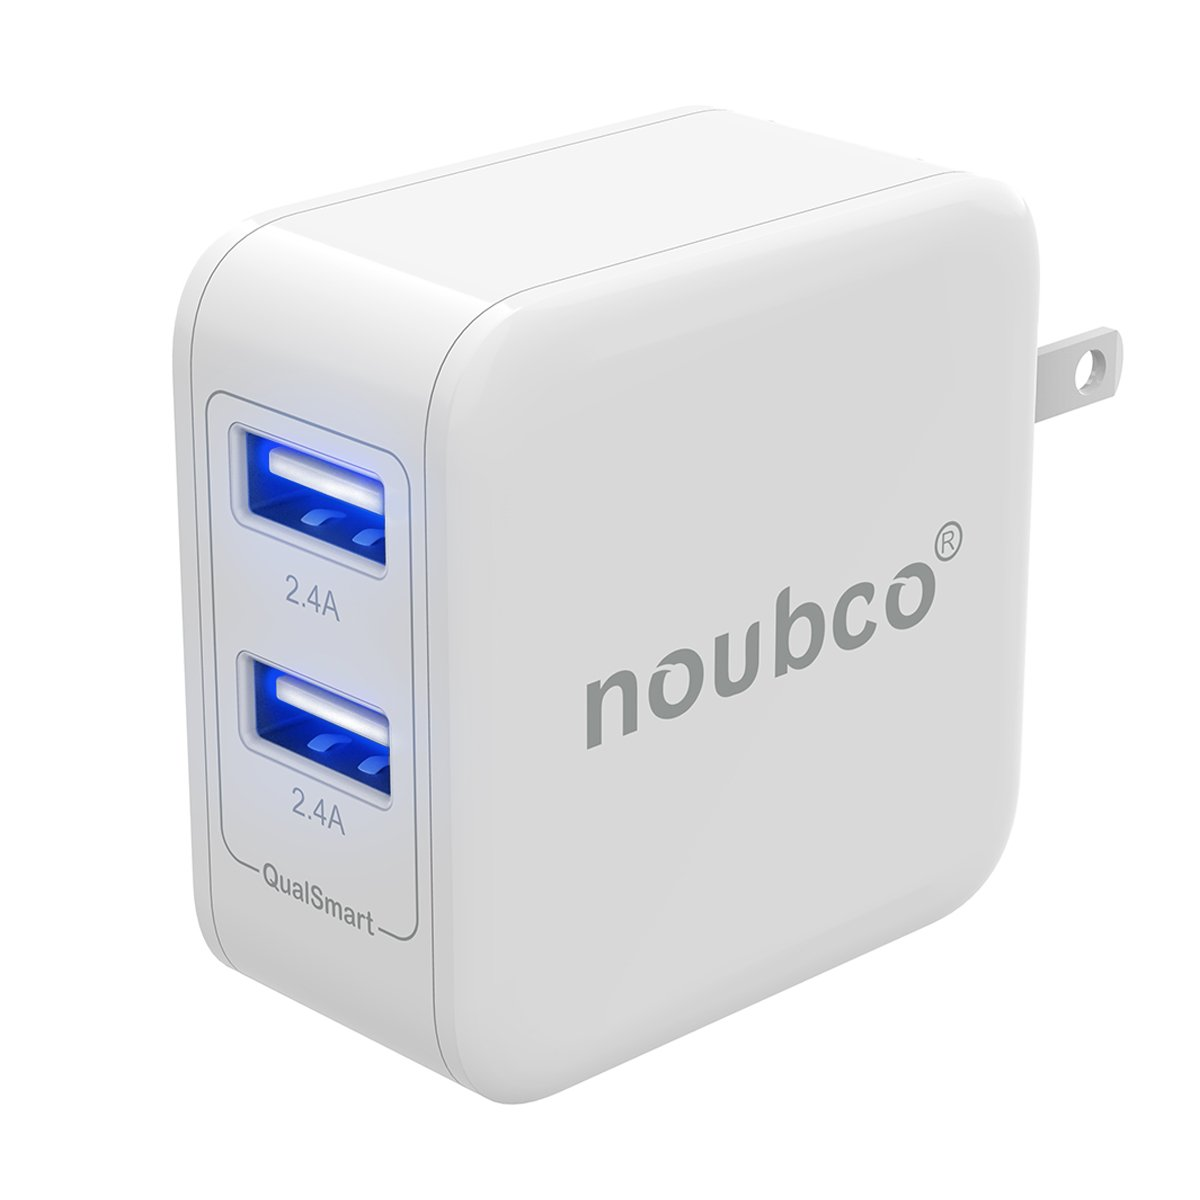 Noubco Wall Charger | 4.8A 24W Dual USB Port AC Charging Block Foldable Plug | Compatible iPhone, iPad, iPod Other OEM Apple Devices - Black QS24W2PBB